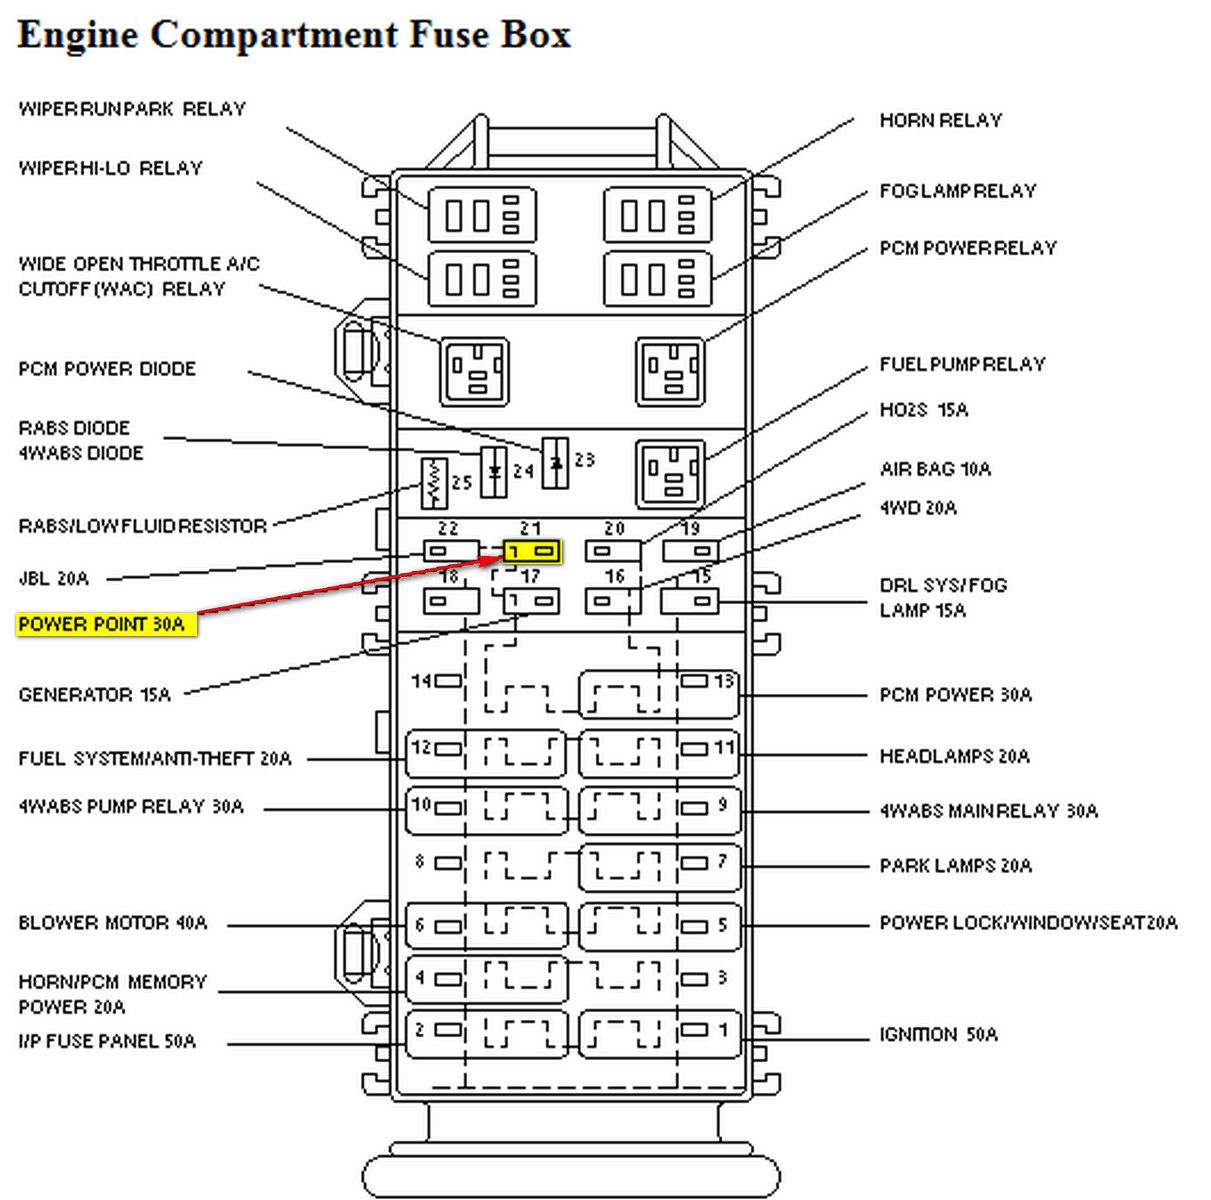 medium resolution of 97 explorer fuse box wiring diagram fuse box diagram also leryn franco on 2001 ford e350 fuel pump relay